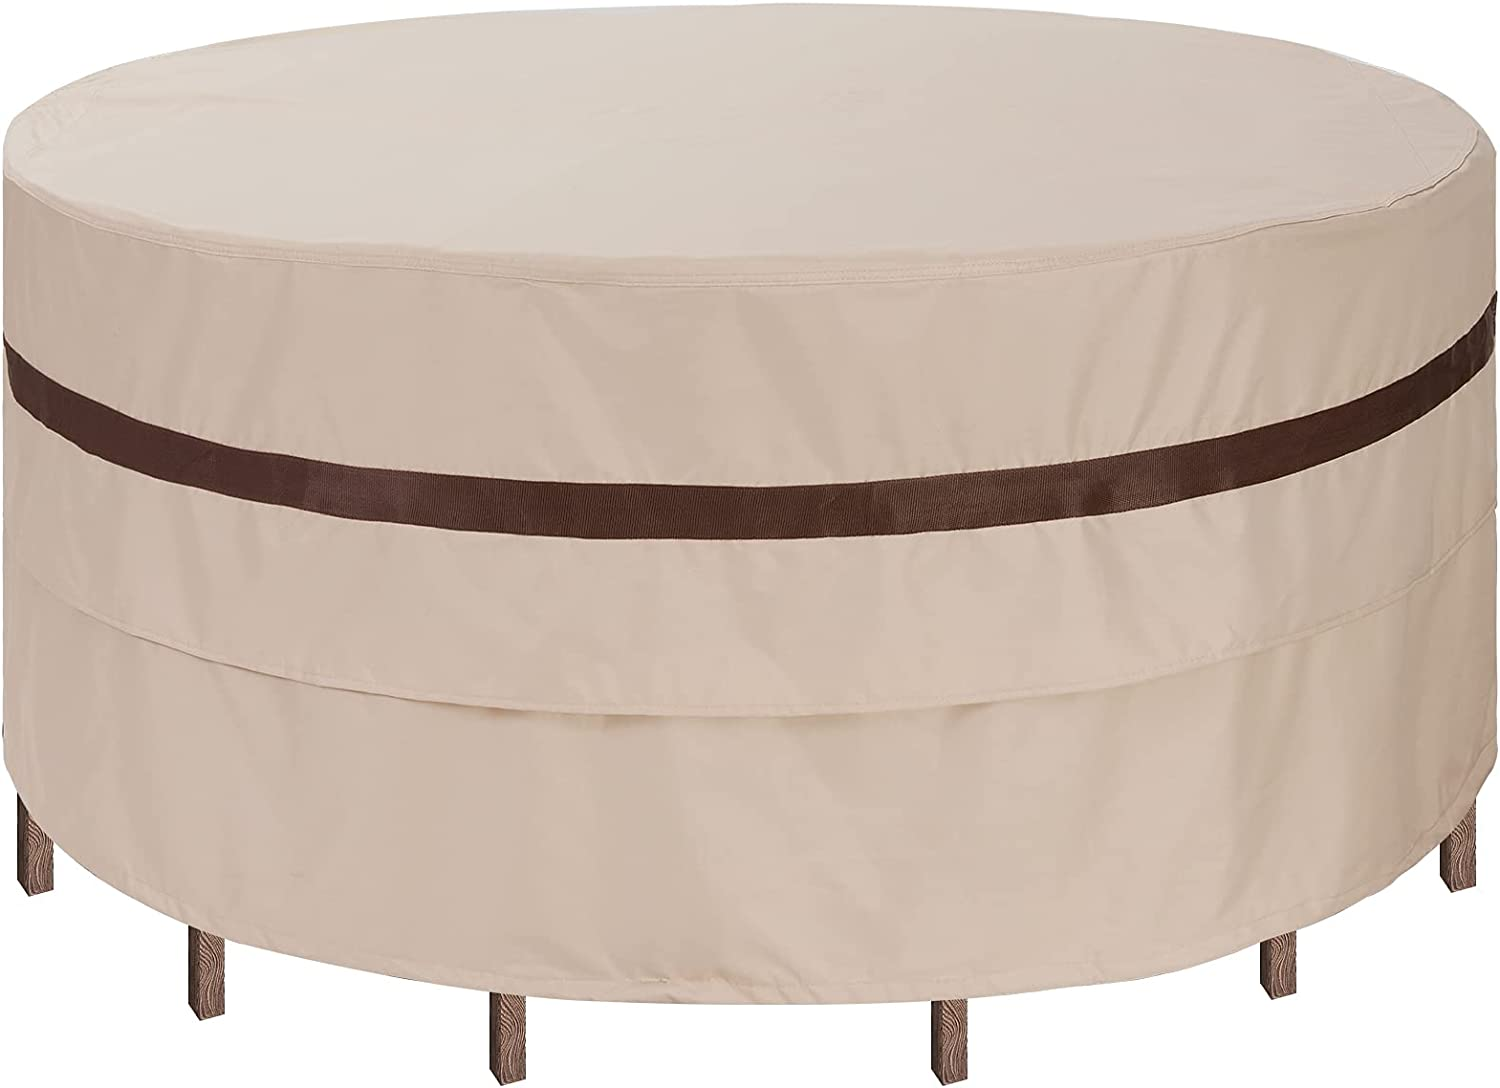 Round Patio Table Cover 76'' Dia Waterproof Patio Furniture Set Covers 30''h Outdoor Lawn Table and Chair Covers